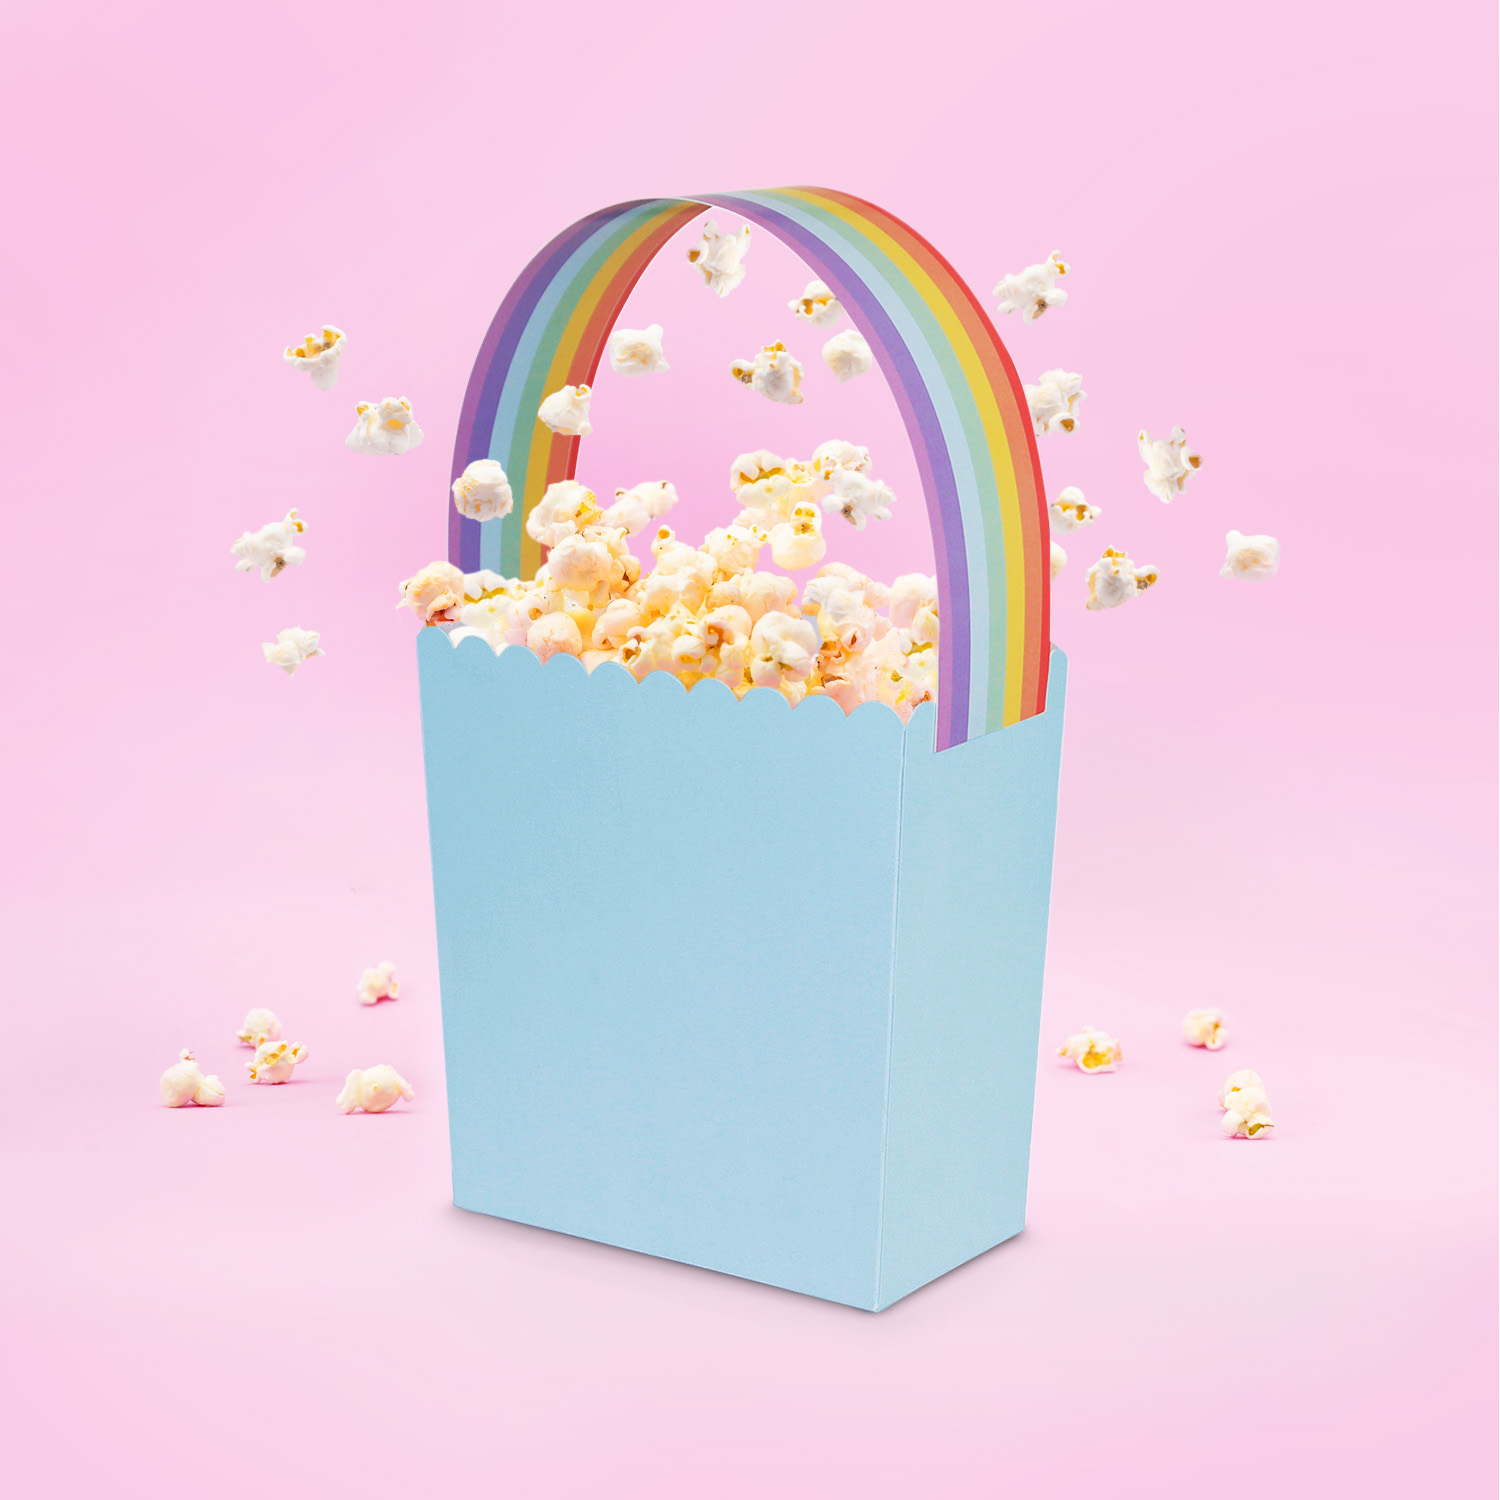 Surprise Snacks and Gifts Basket with Rainbow Handle